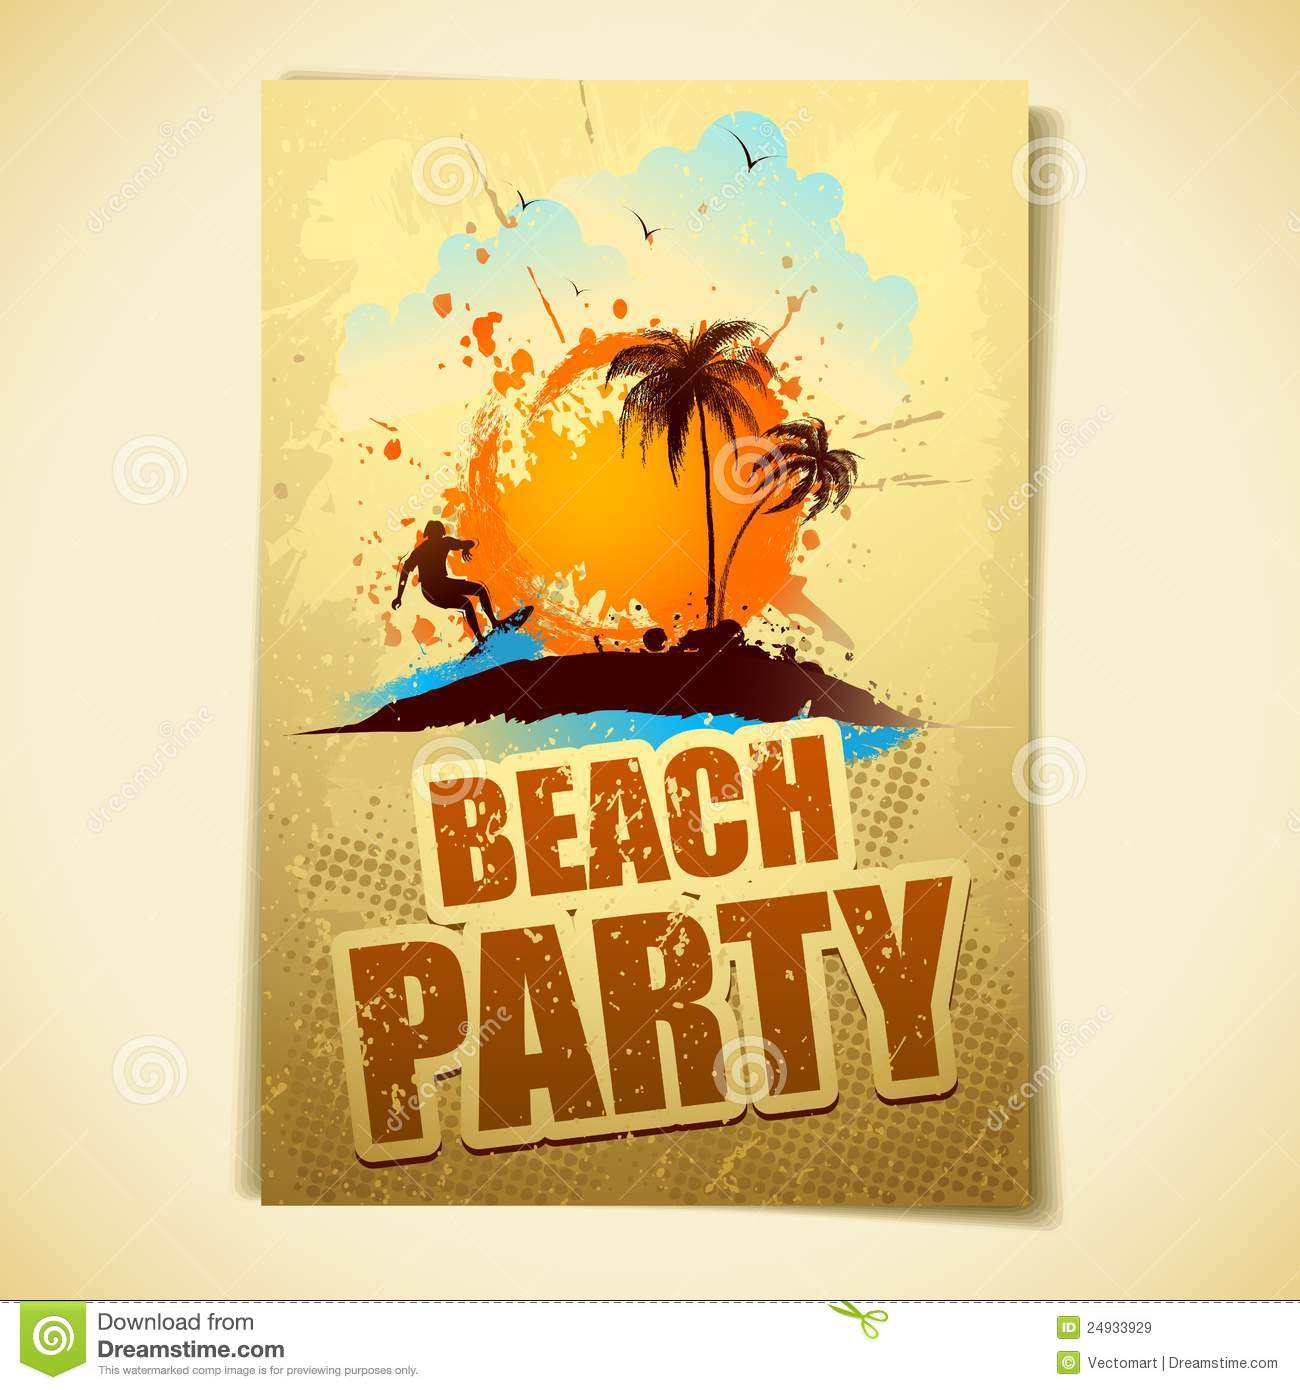 No Credit Check Credit Cards >> Beach Party Royalty Free Stock Images - Image: 24933929